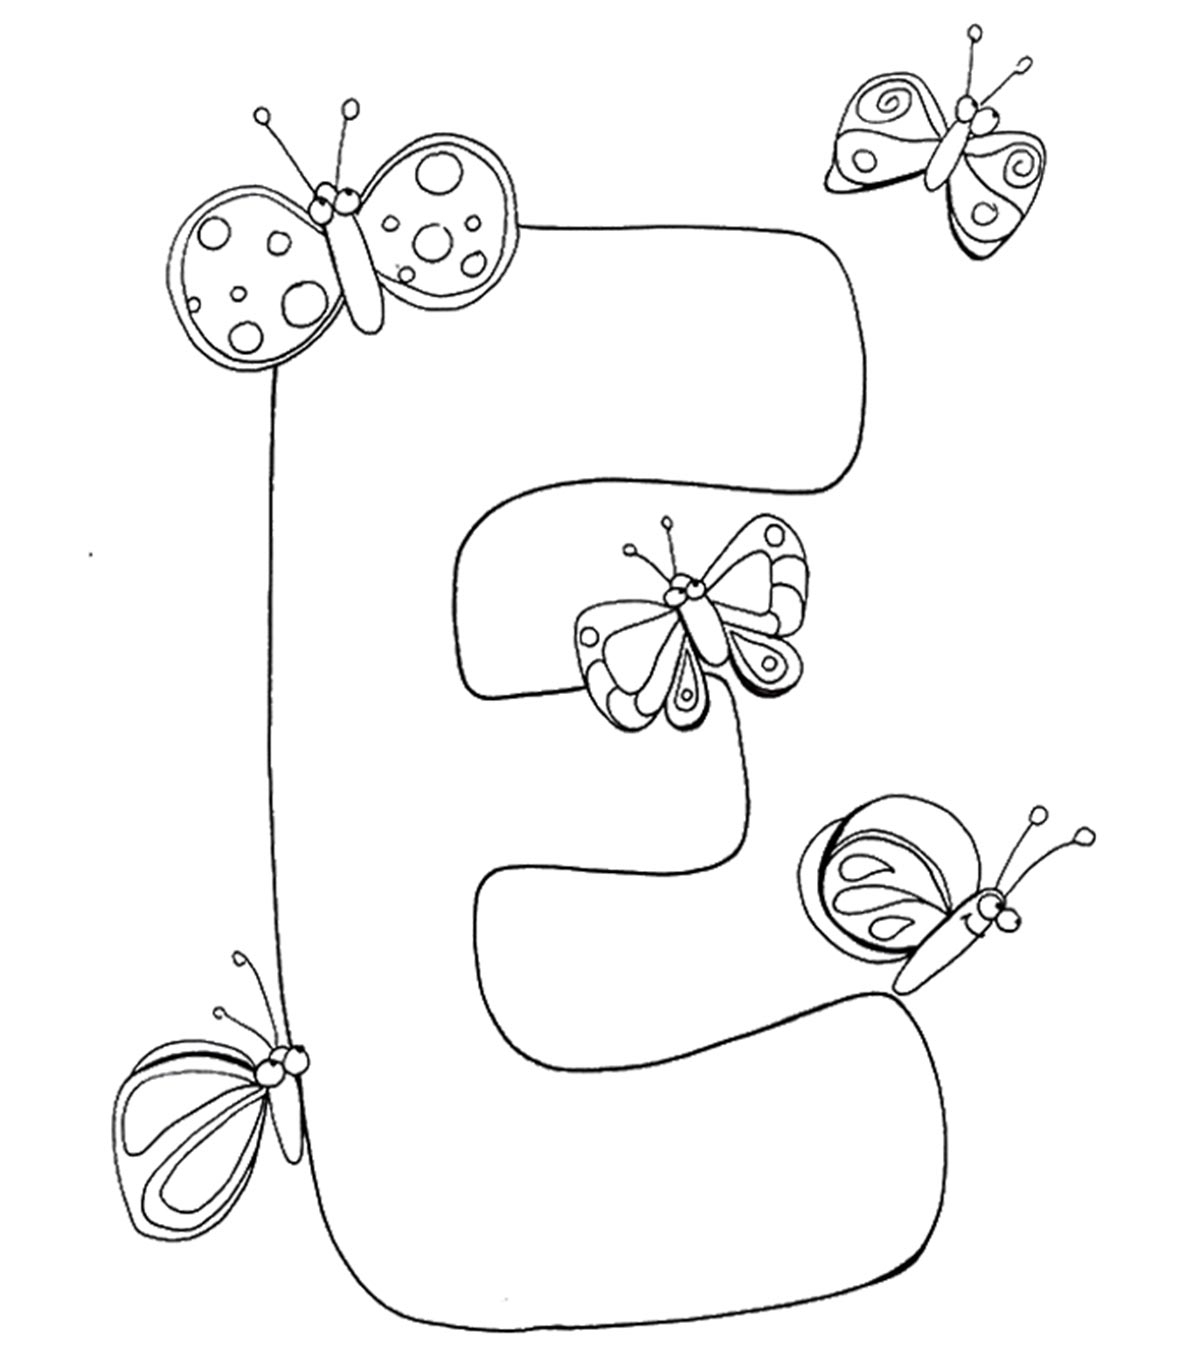 Top 10 Free Printable Letter E Coloring Pages Online pertaining to Letter E Worksheets Coloring